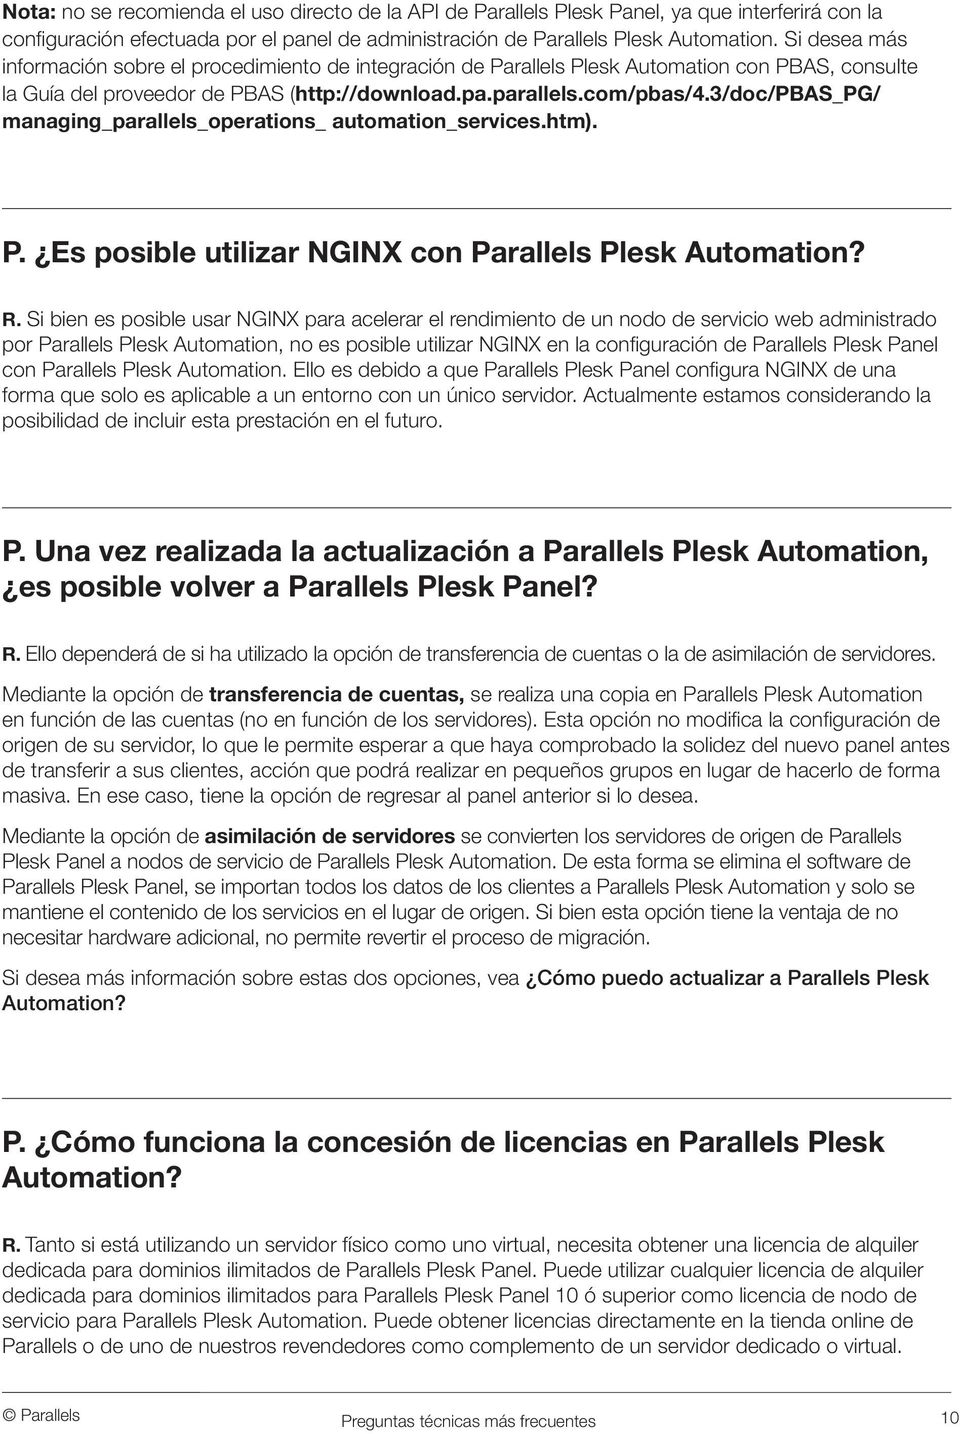 3/doc/pbas_pg/ managing_parallels_operations_ automation_services.htm). P. Es posible utilizar NGINX con Parallels Plesk Automation? R.